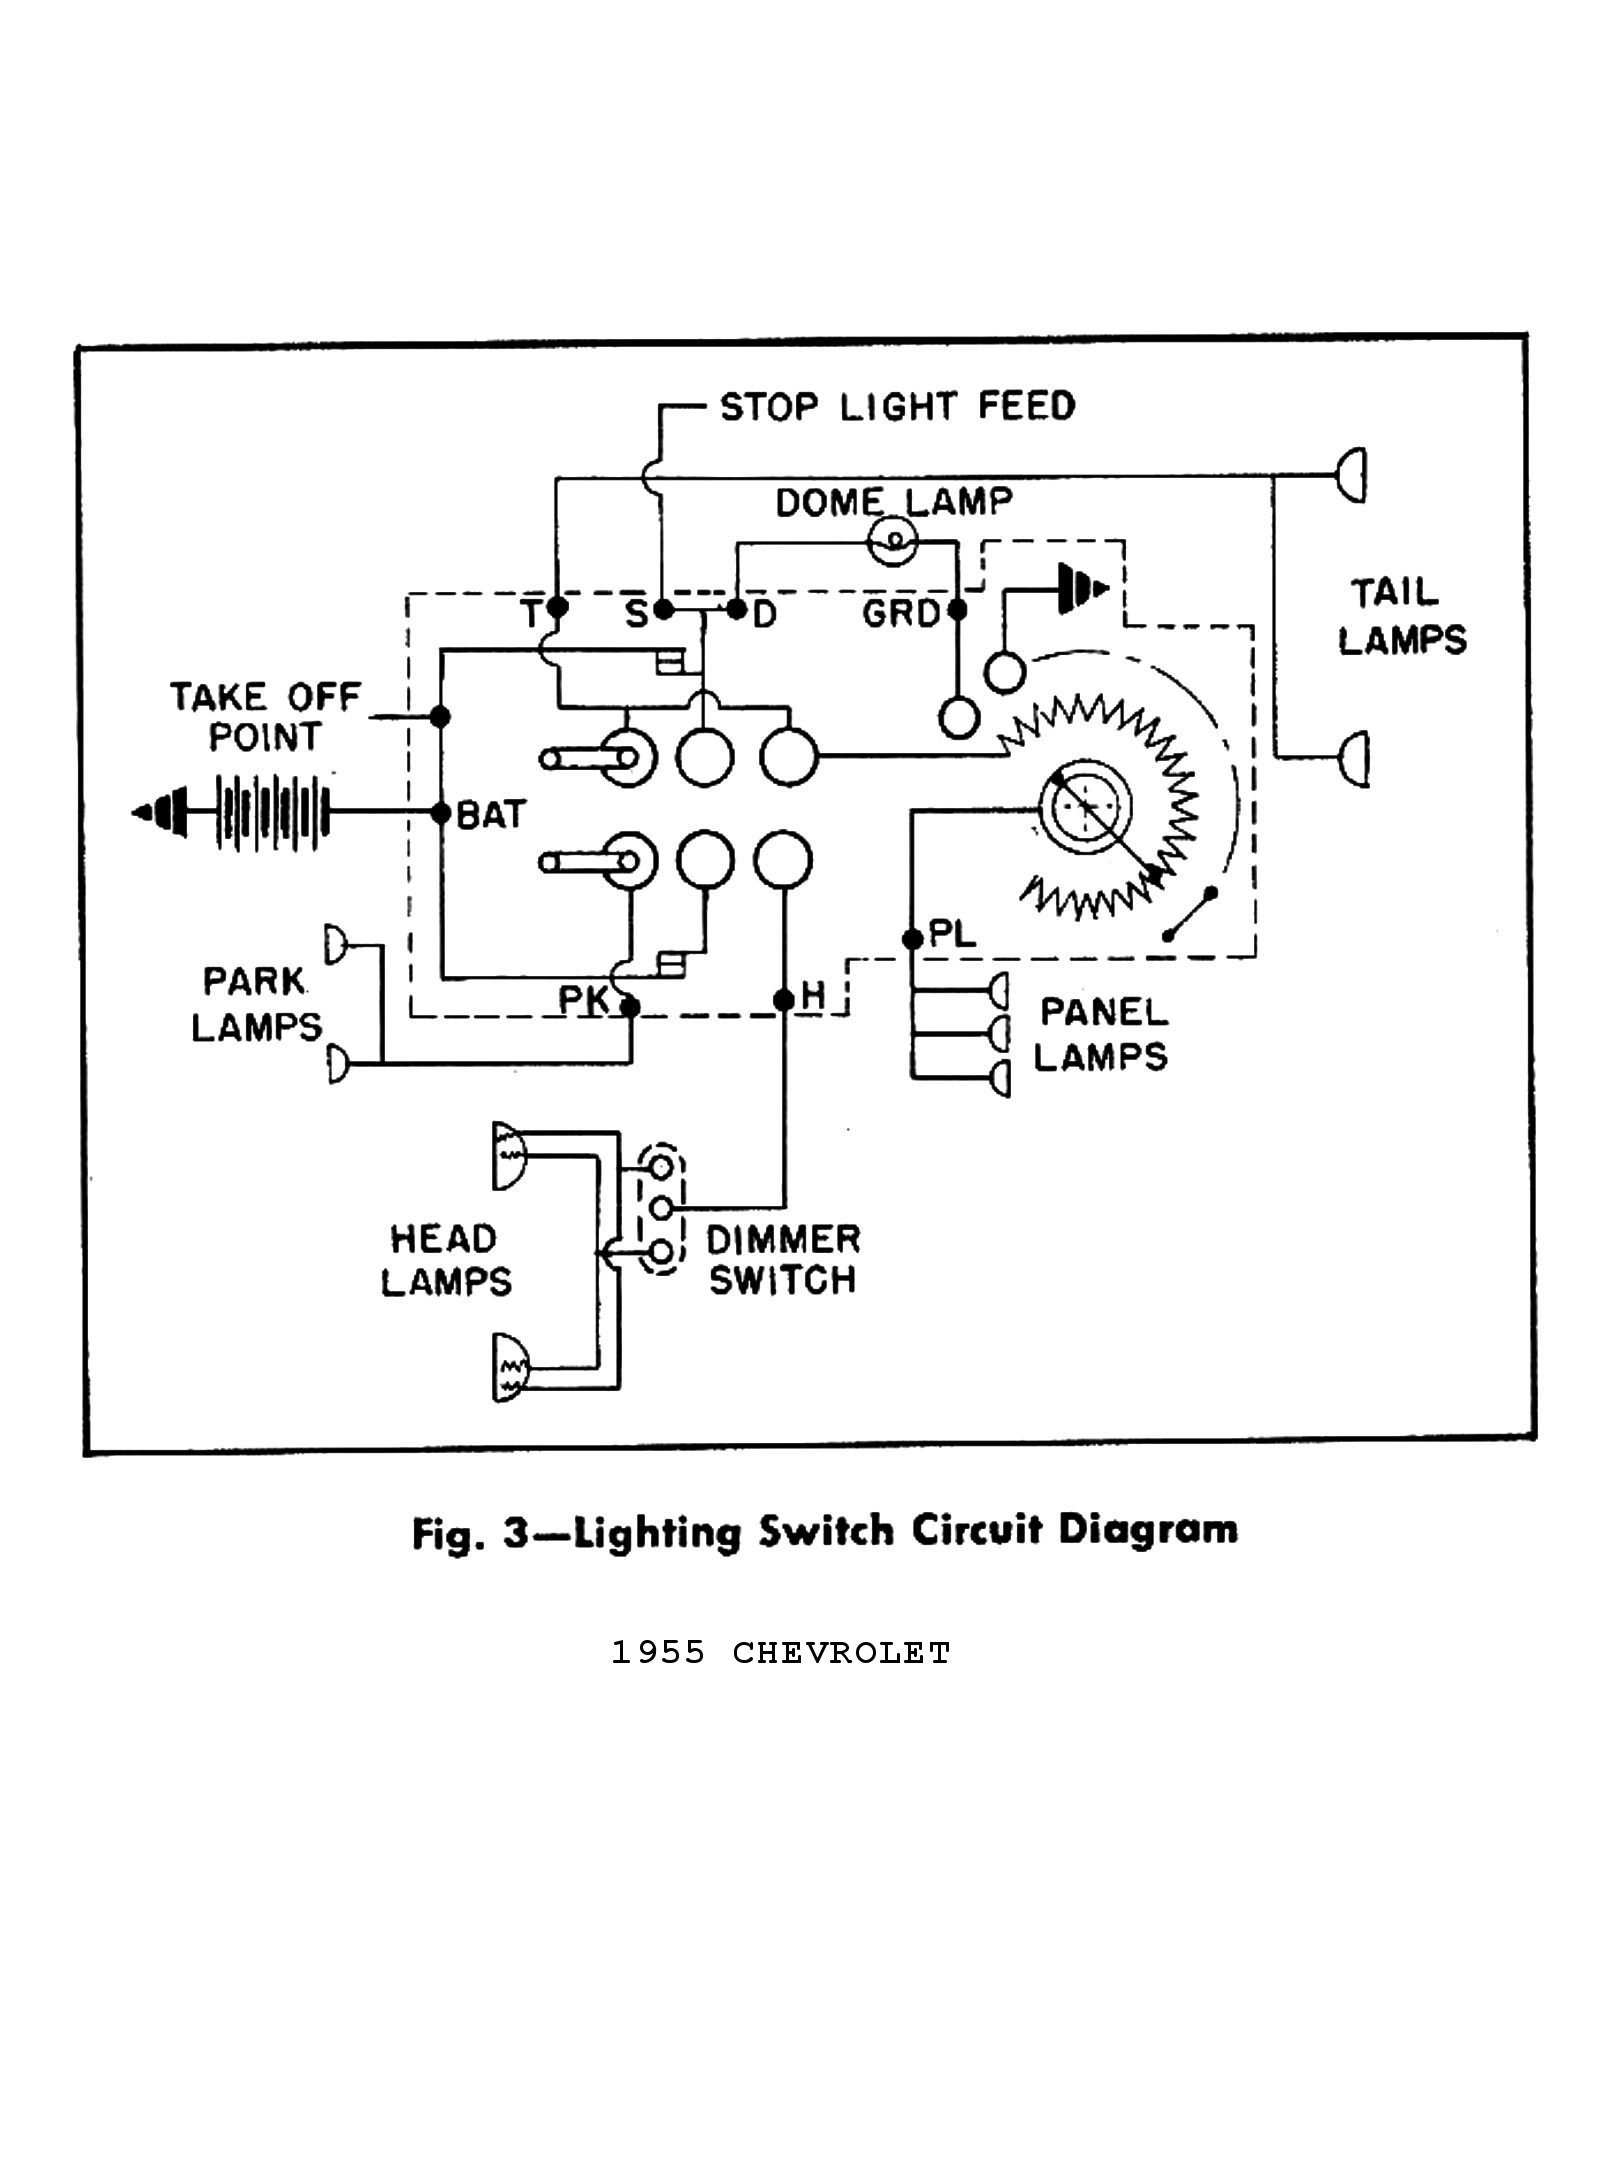 57 chevy wiring light switch - wiring diagram online bored-length -  bored-length.fabricosta.it  fabrizio costa website